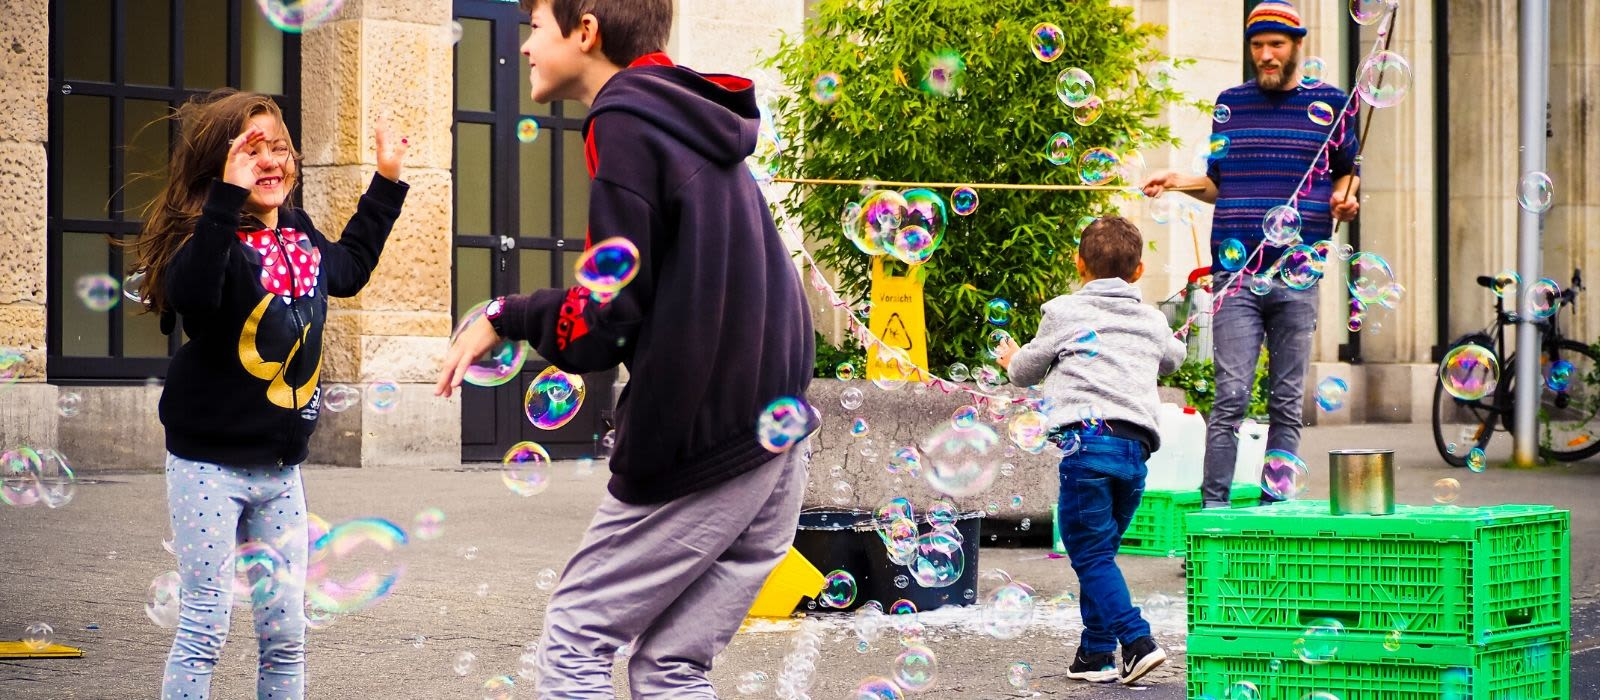 Image of teenagers playing with bubbles